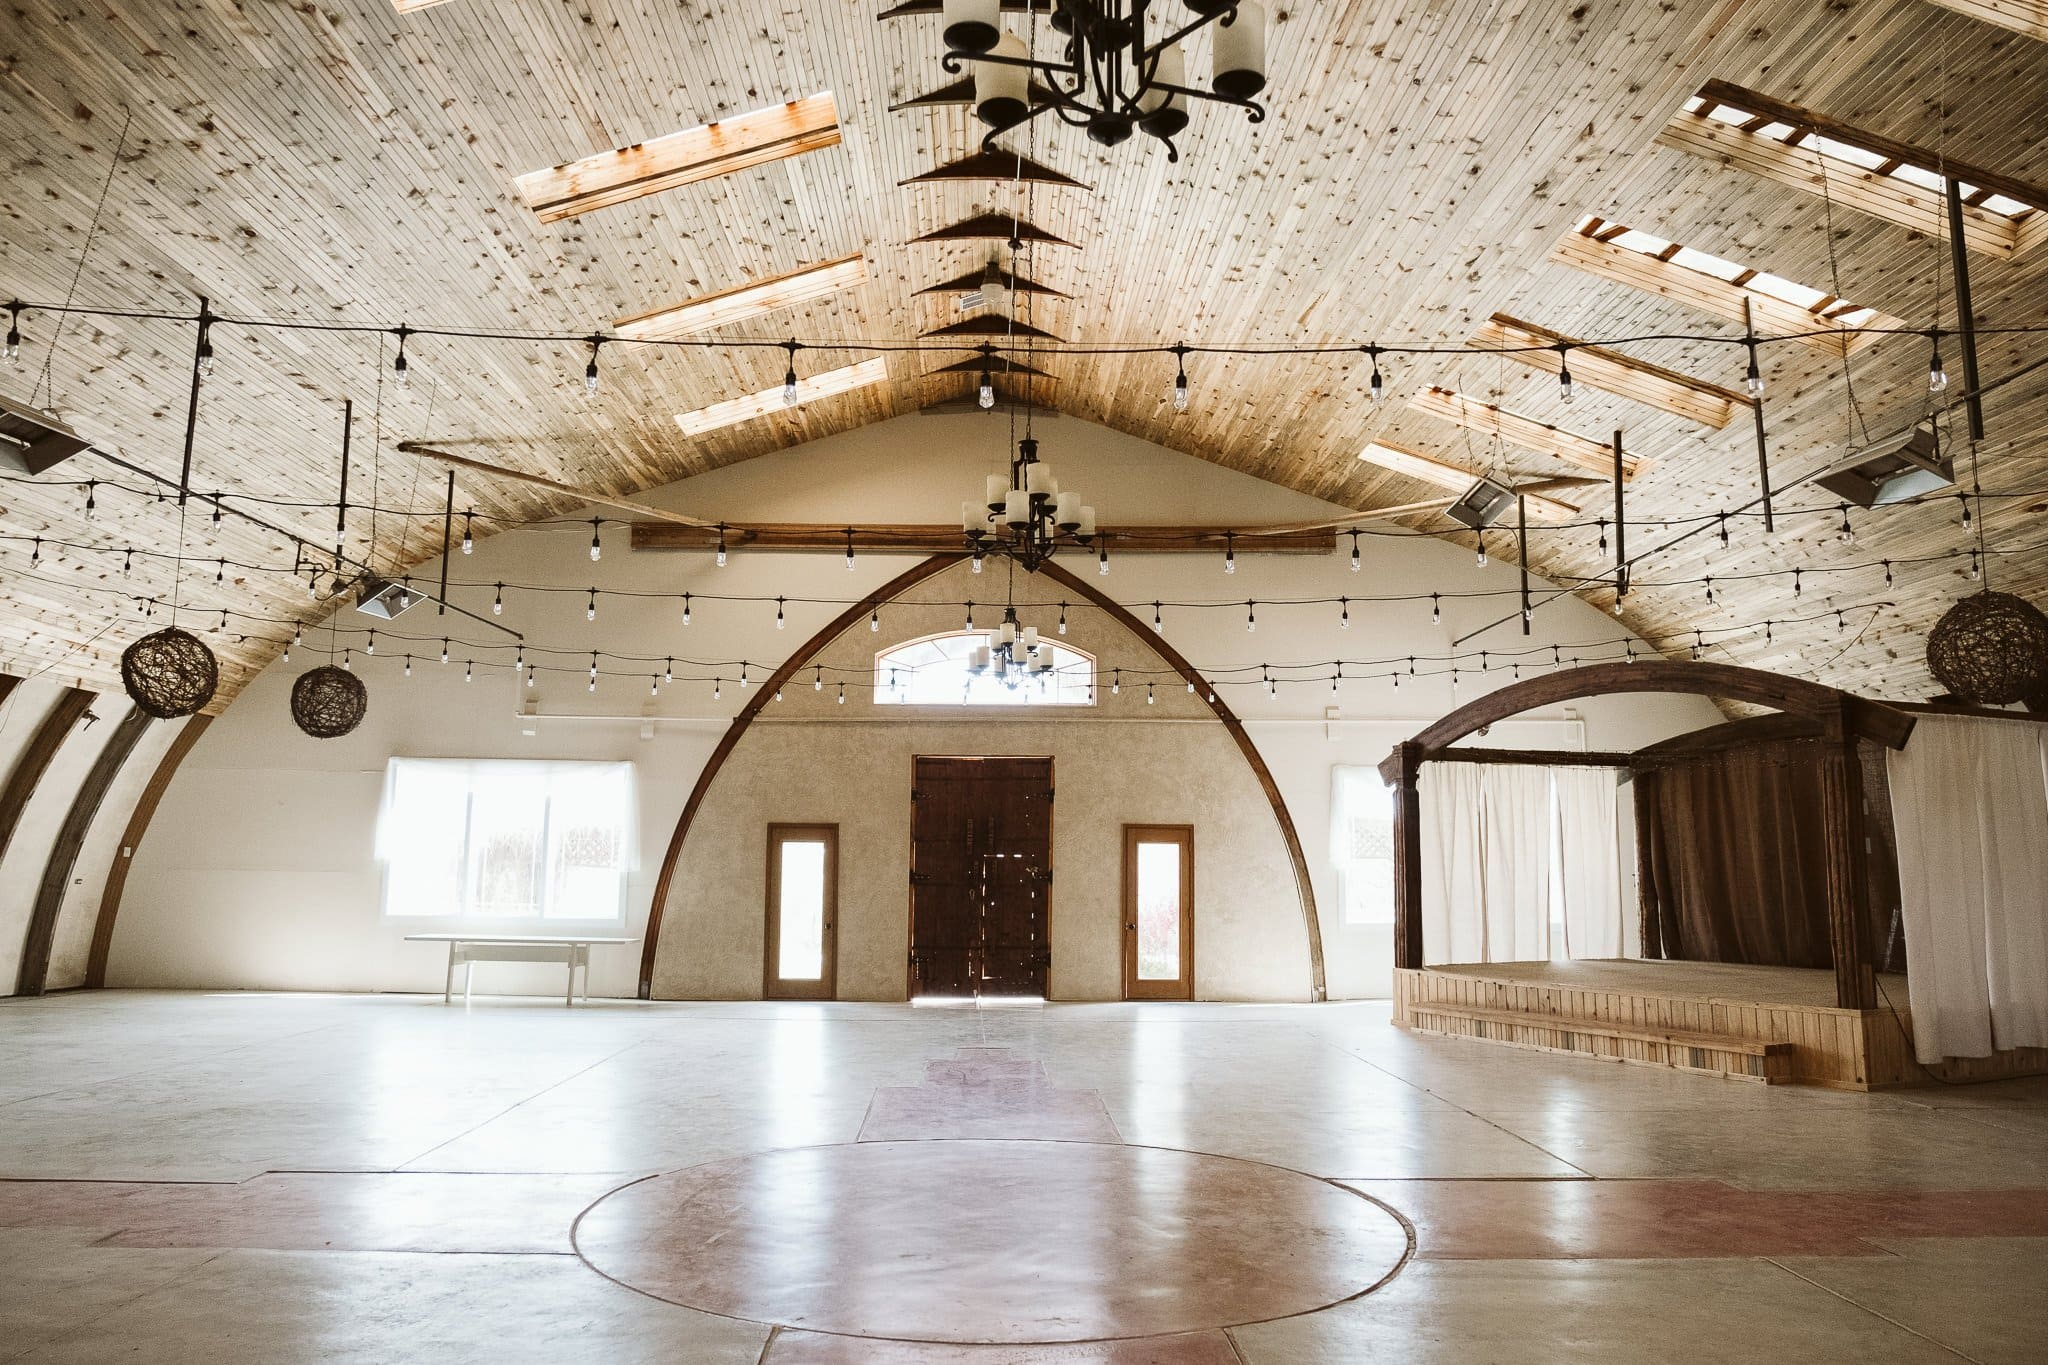 lone-hawk-farm-boulder-wedding-venue-5